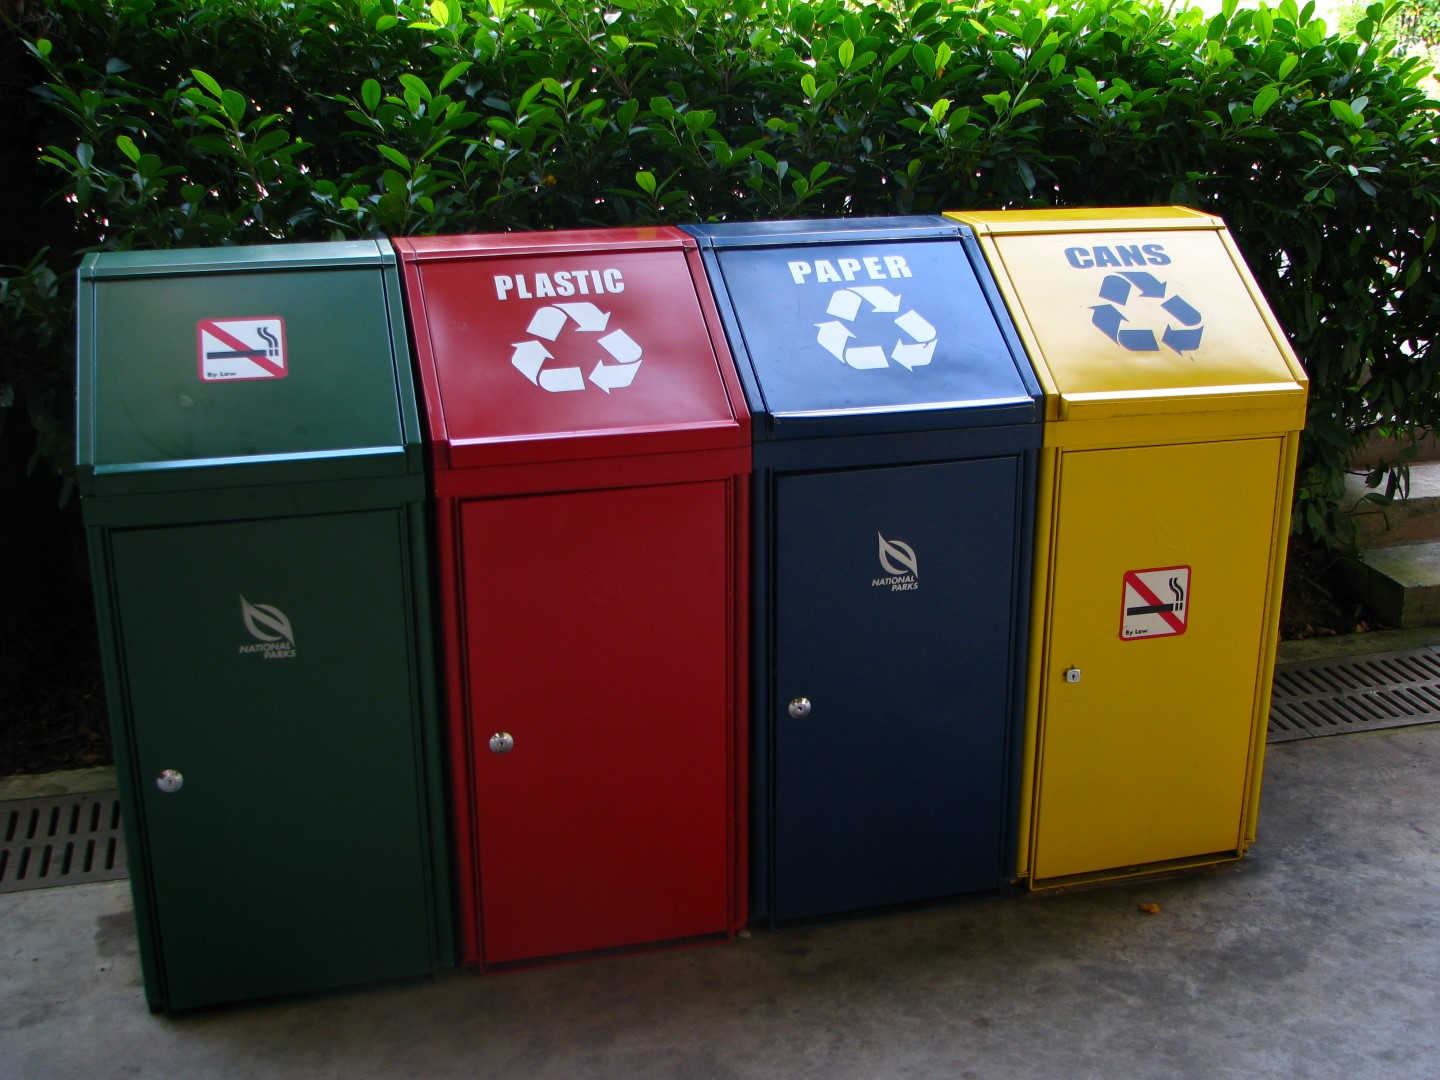 hortpark_recycling_bin_by_cheejyg (Large)